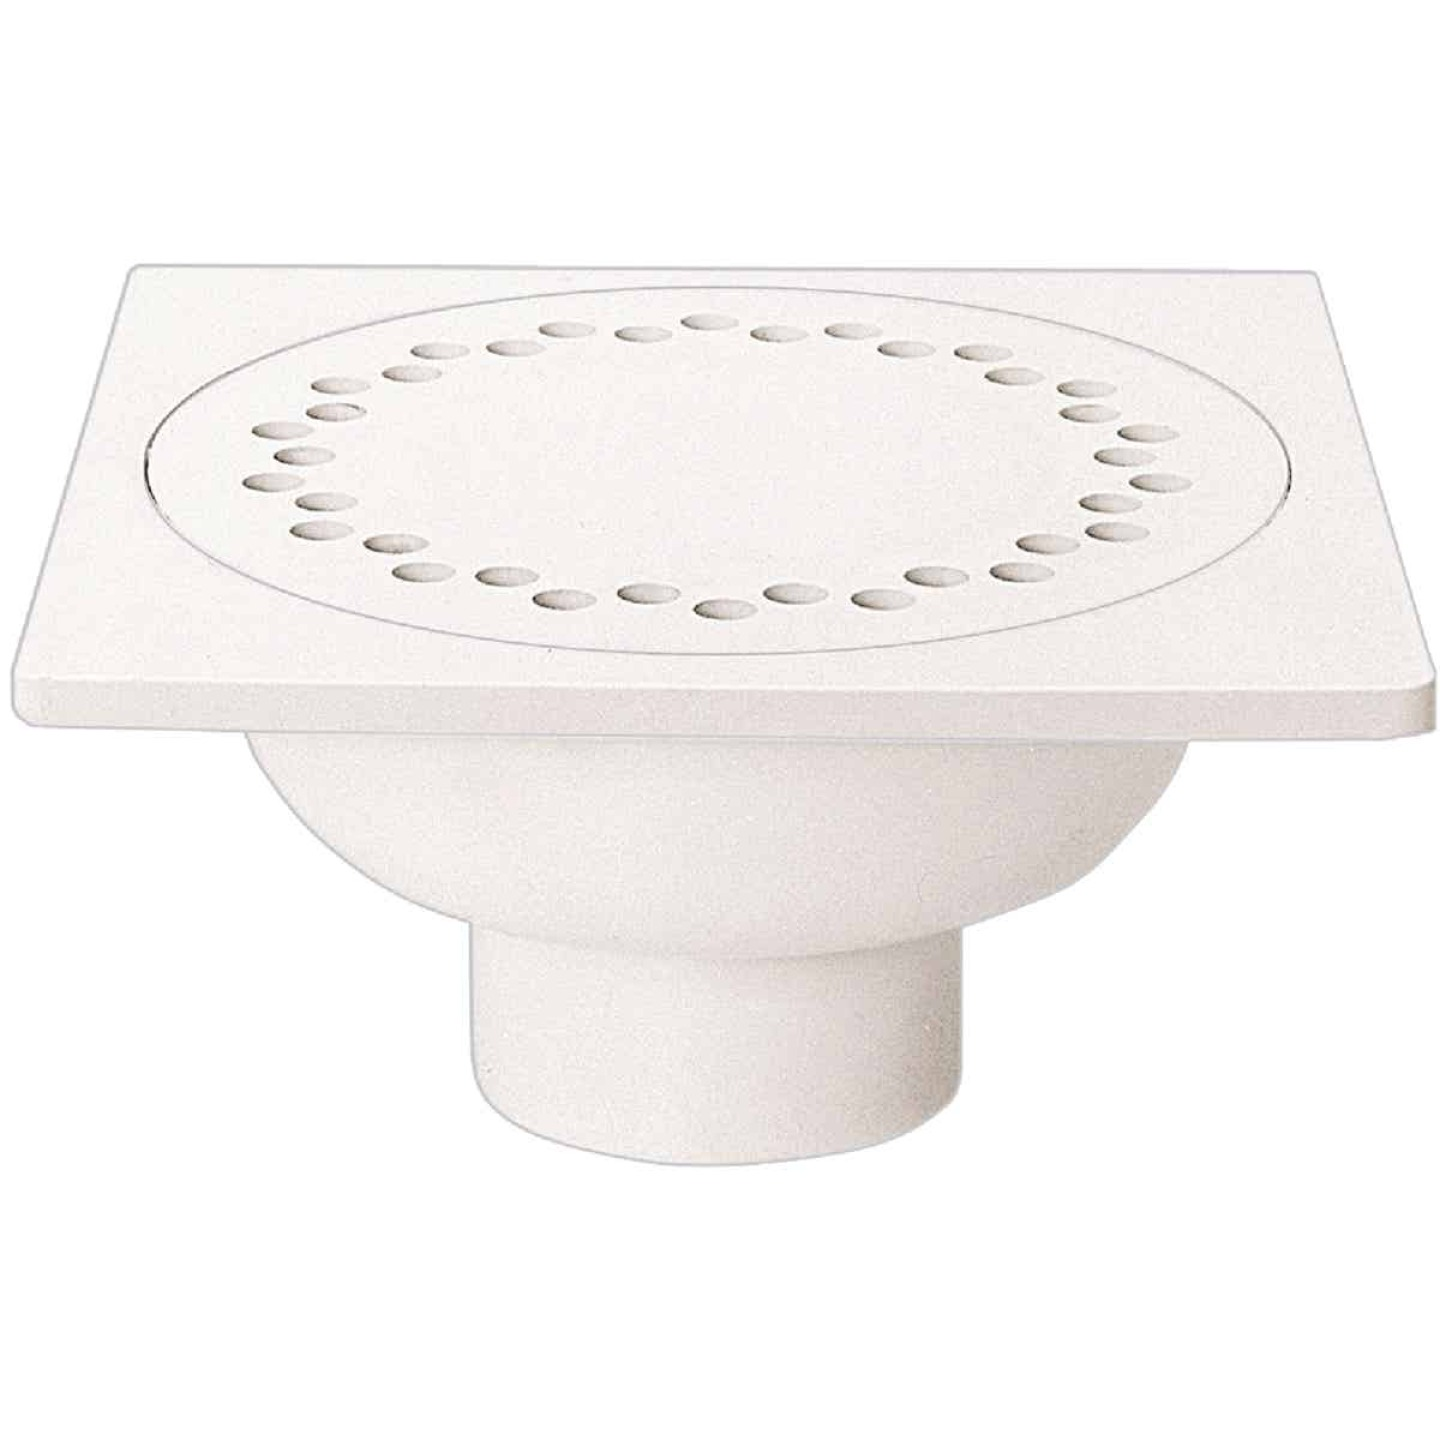 Sioux Chief 9 In. x 3 In. PVC Sewer and Drain Bell Trap Image 1